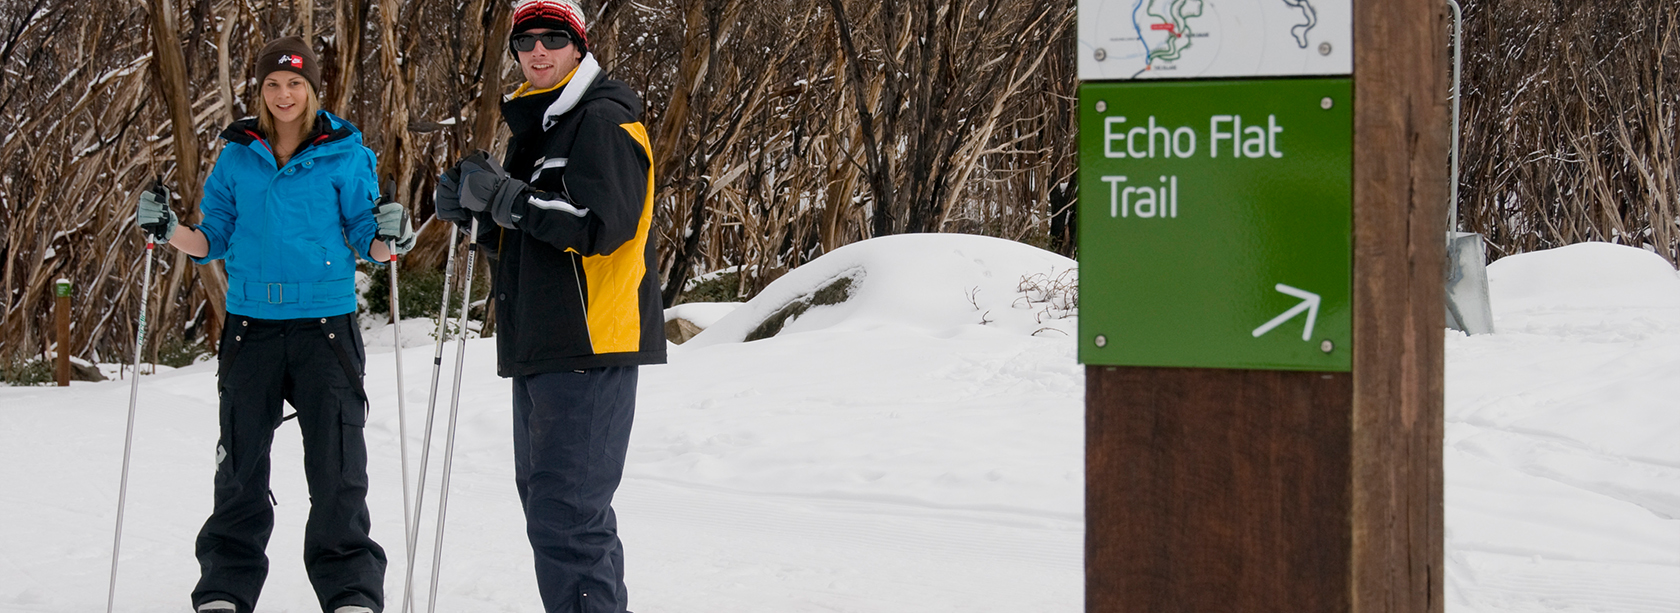 Lake Mountain experience Cross Country skiing